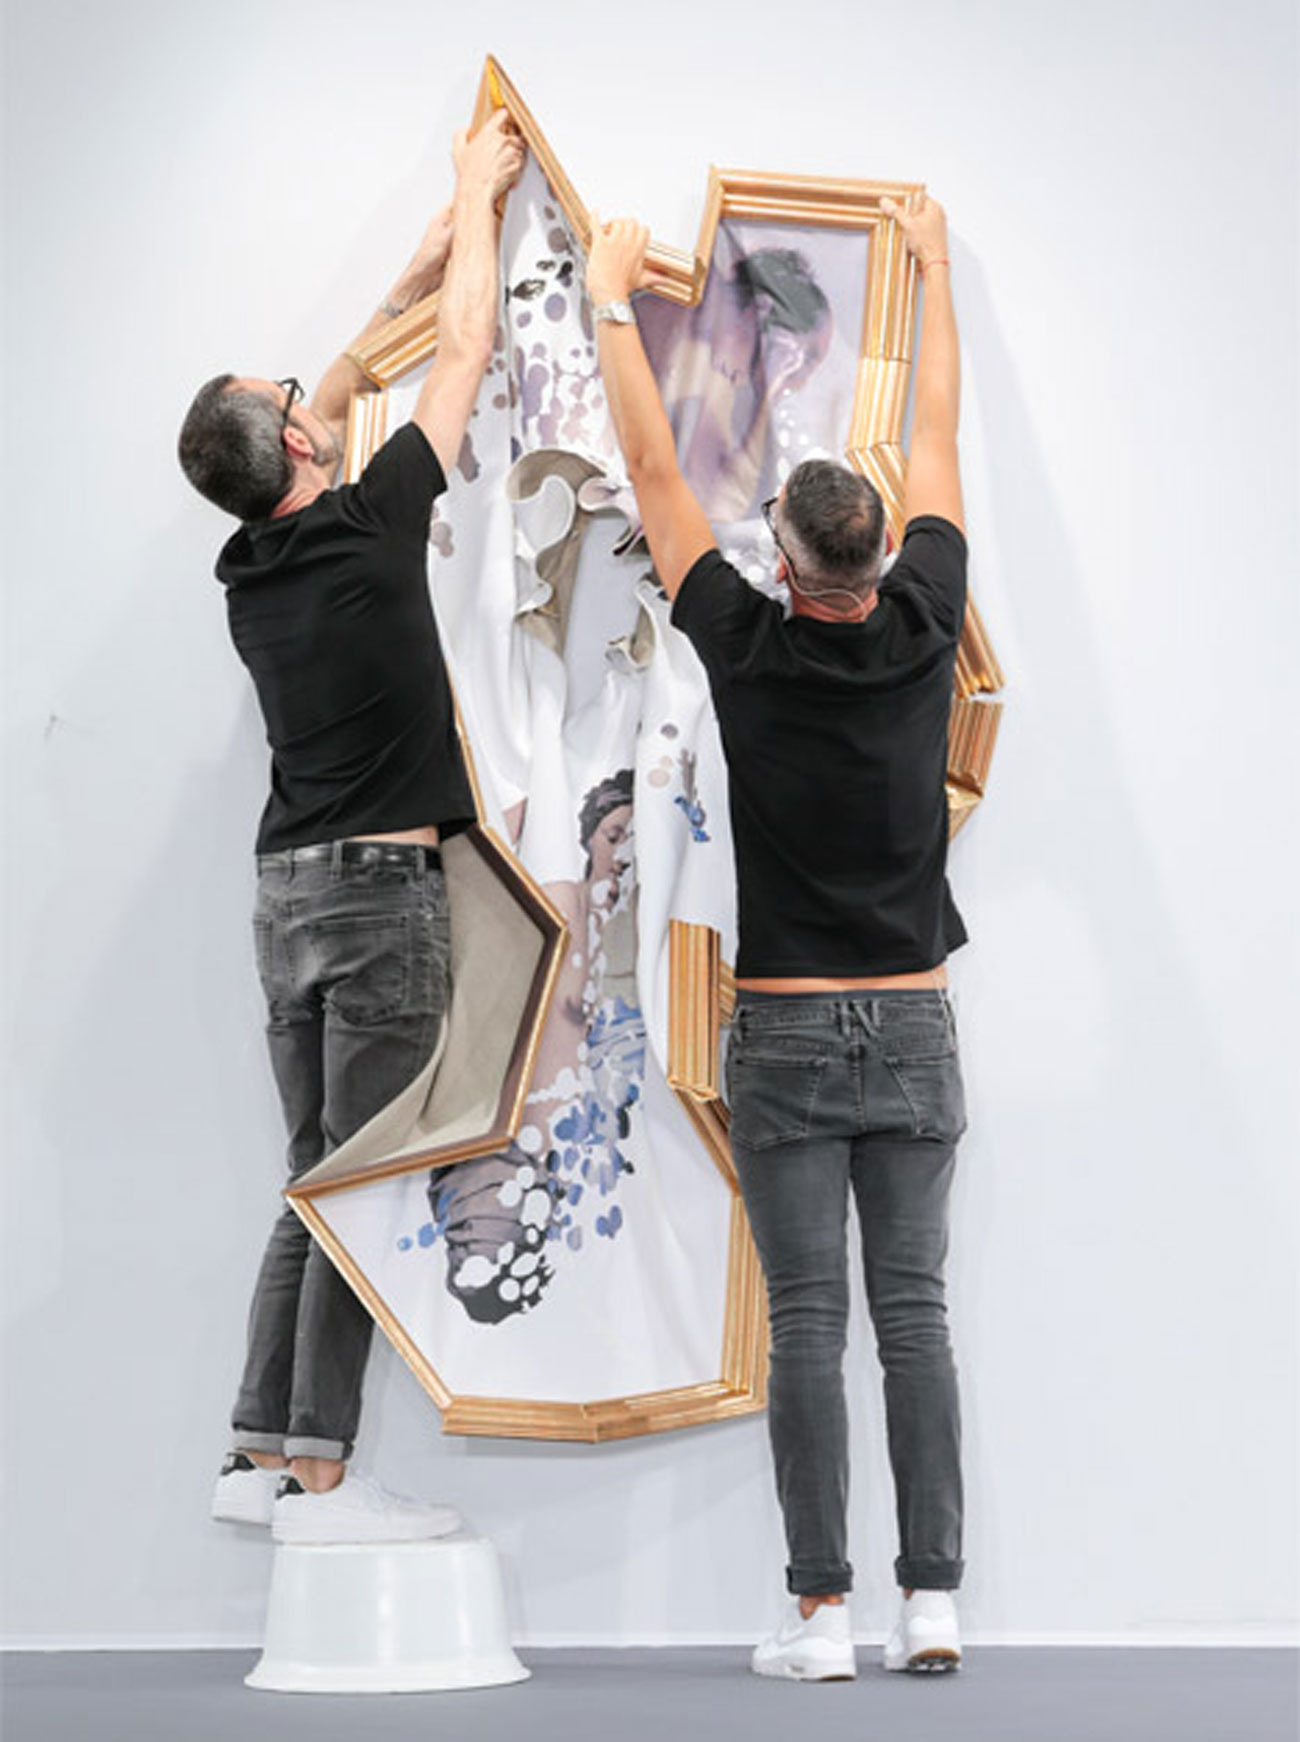 Viktor Rolf AW15 Wearable Art collection